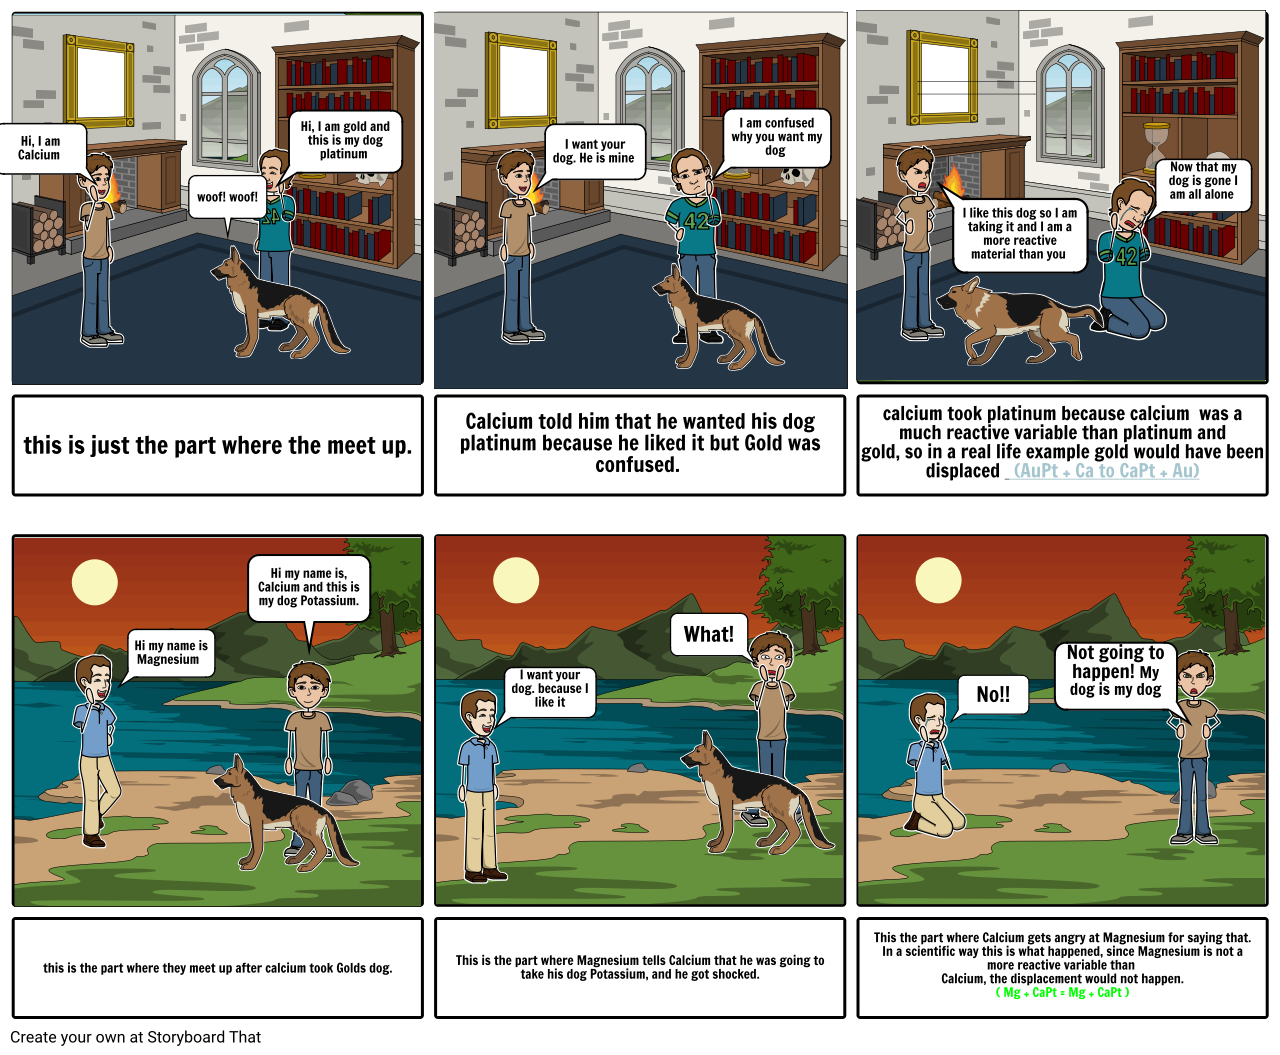 the comics of displacement reactions